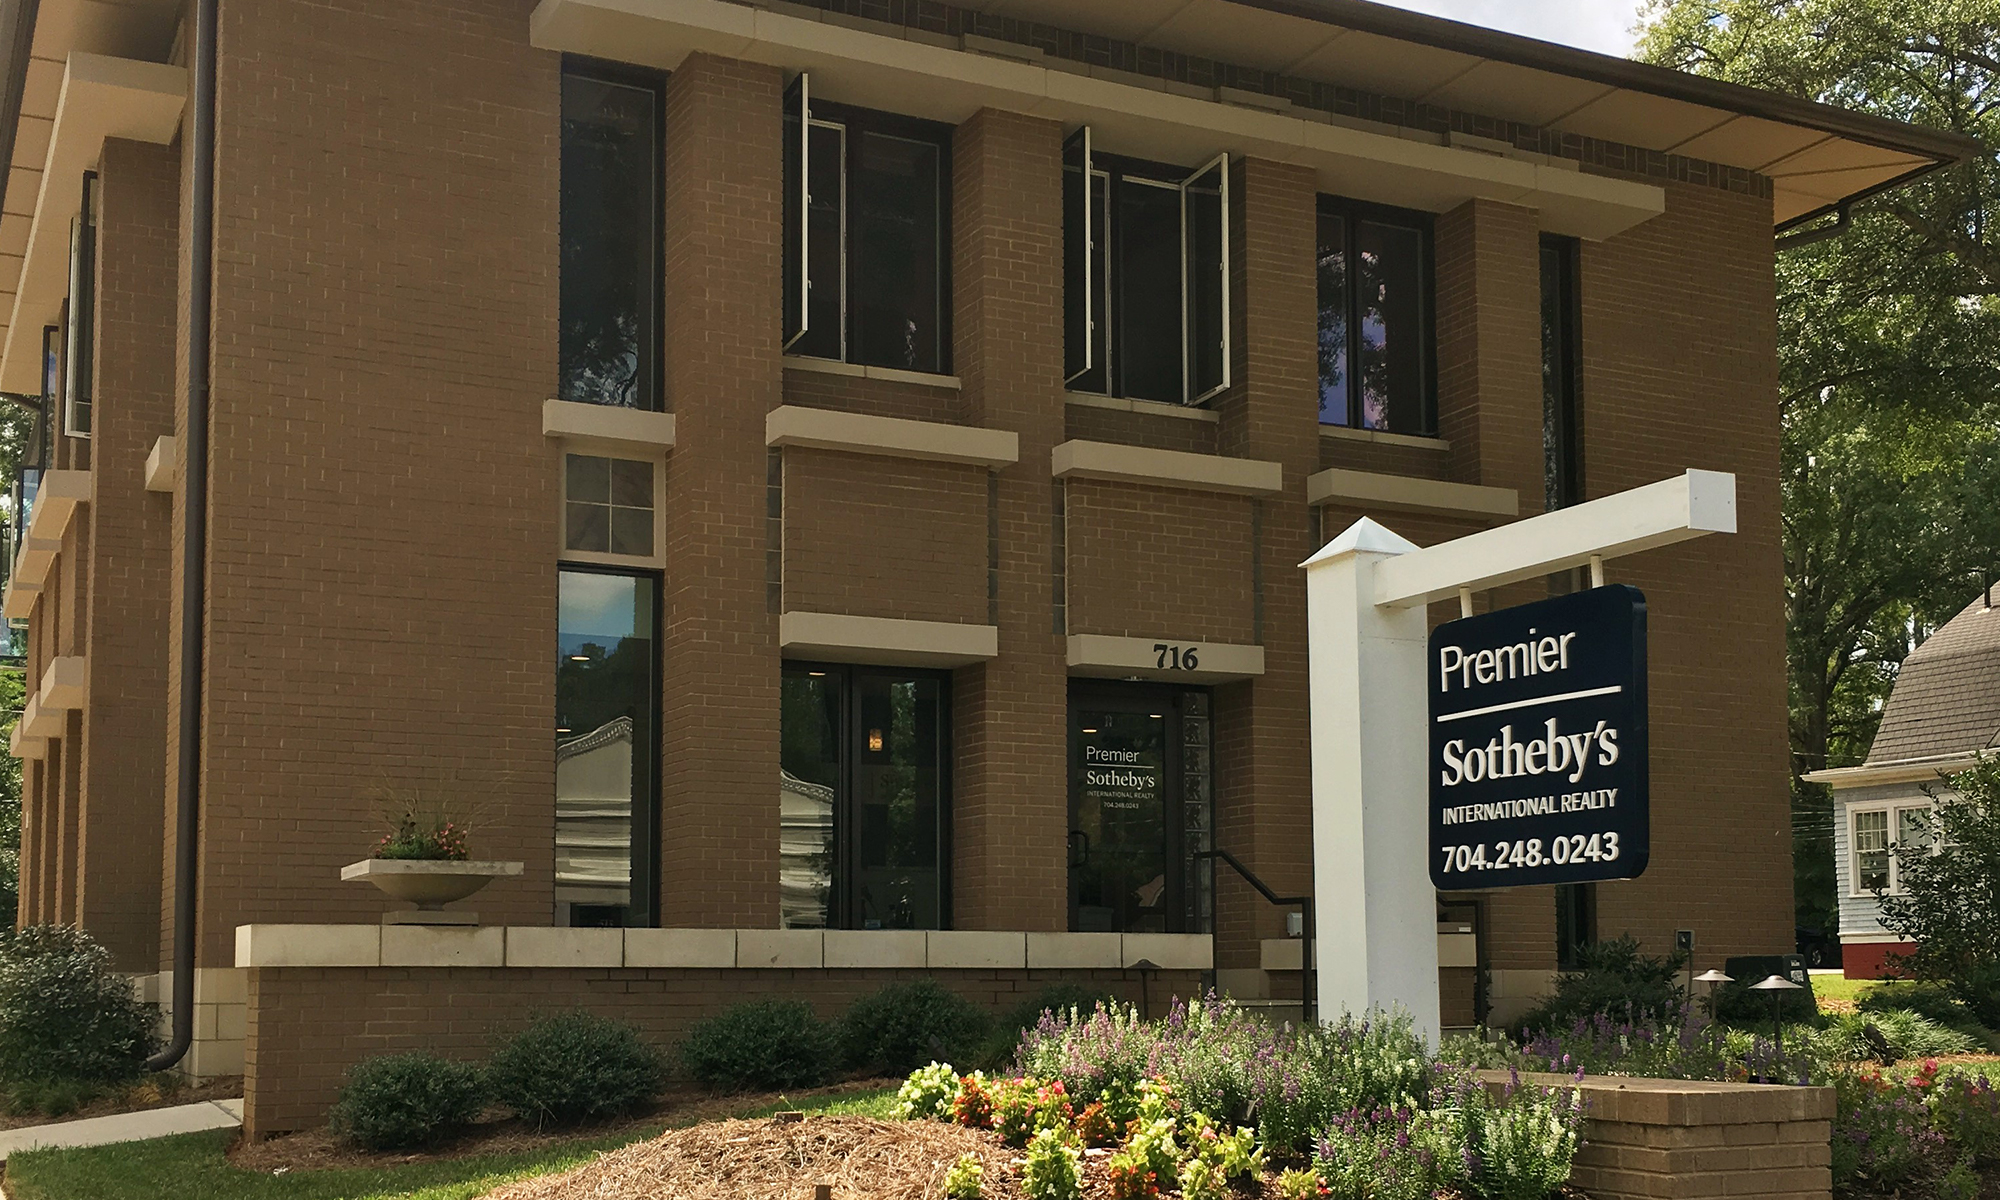 Premier Sotheby's International Realty Charlotte